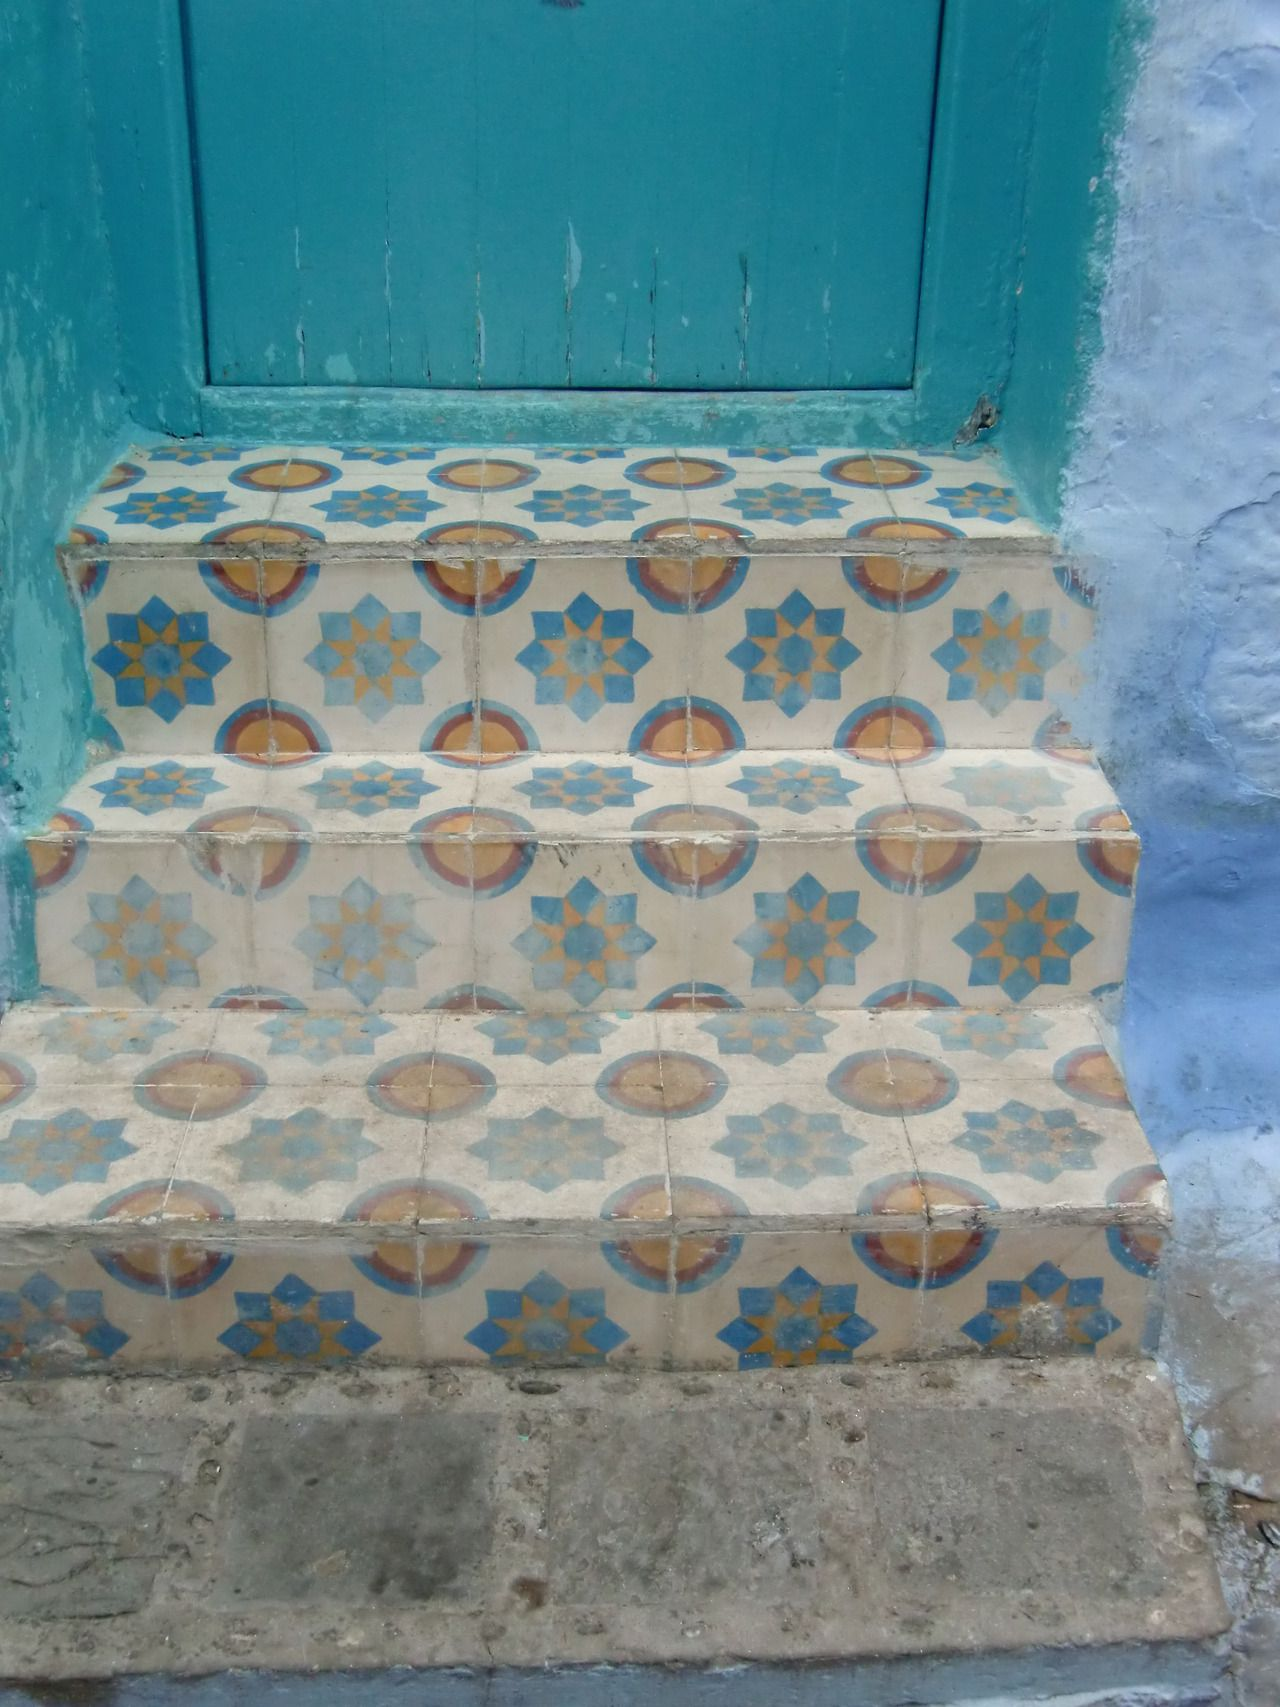 Handmade tiles can be colour coordinated and customized re. shape ...